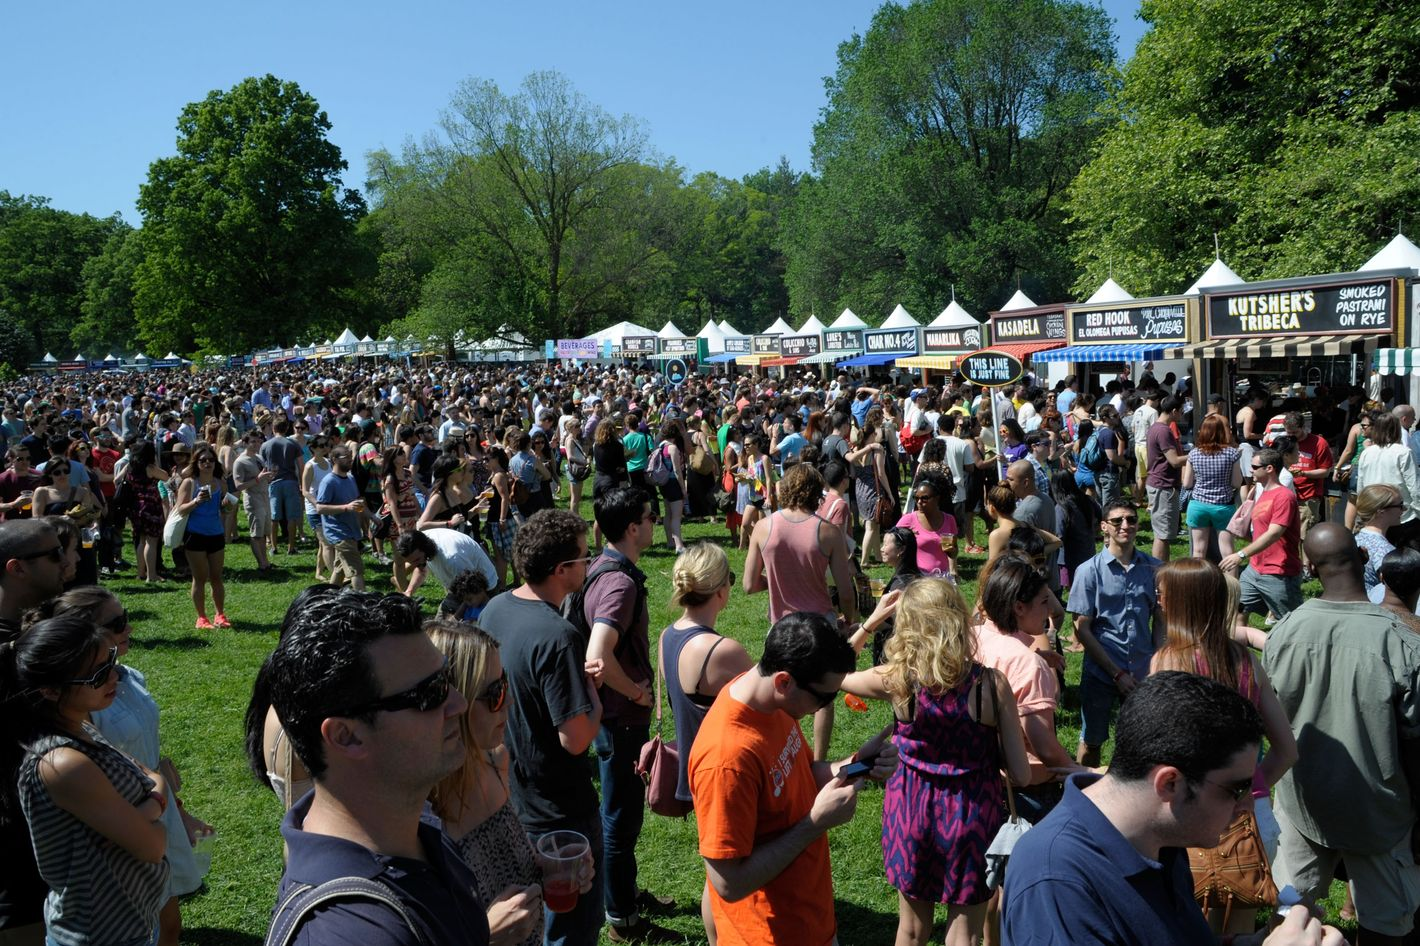 A general view of lines at the Great Googa Mooga 2012 at Prospect Park on May 19, 2012 in New York City.